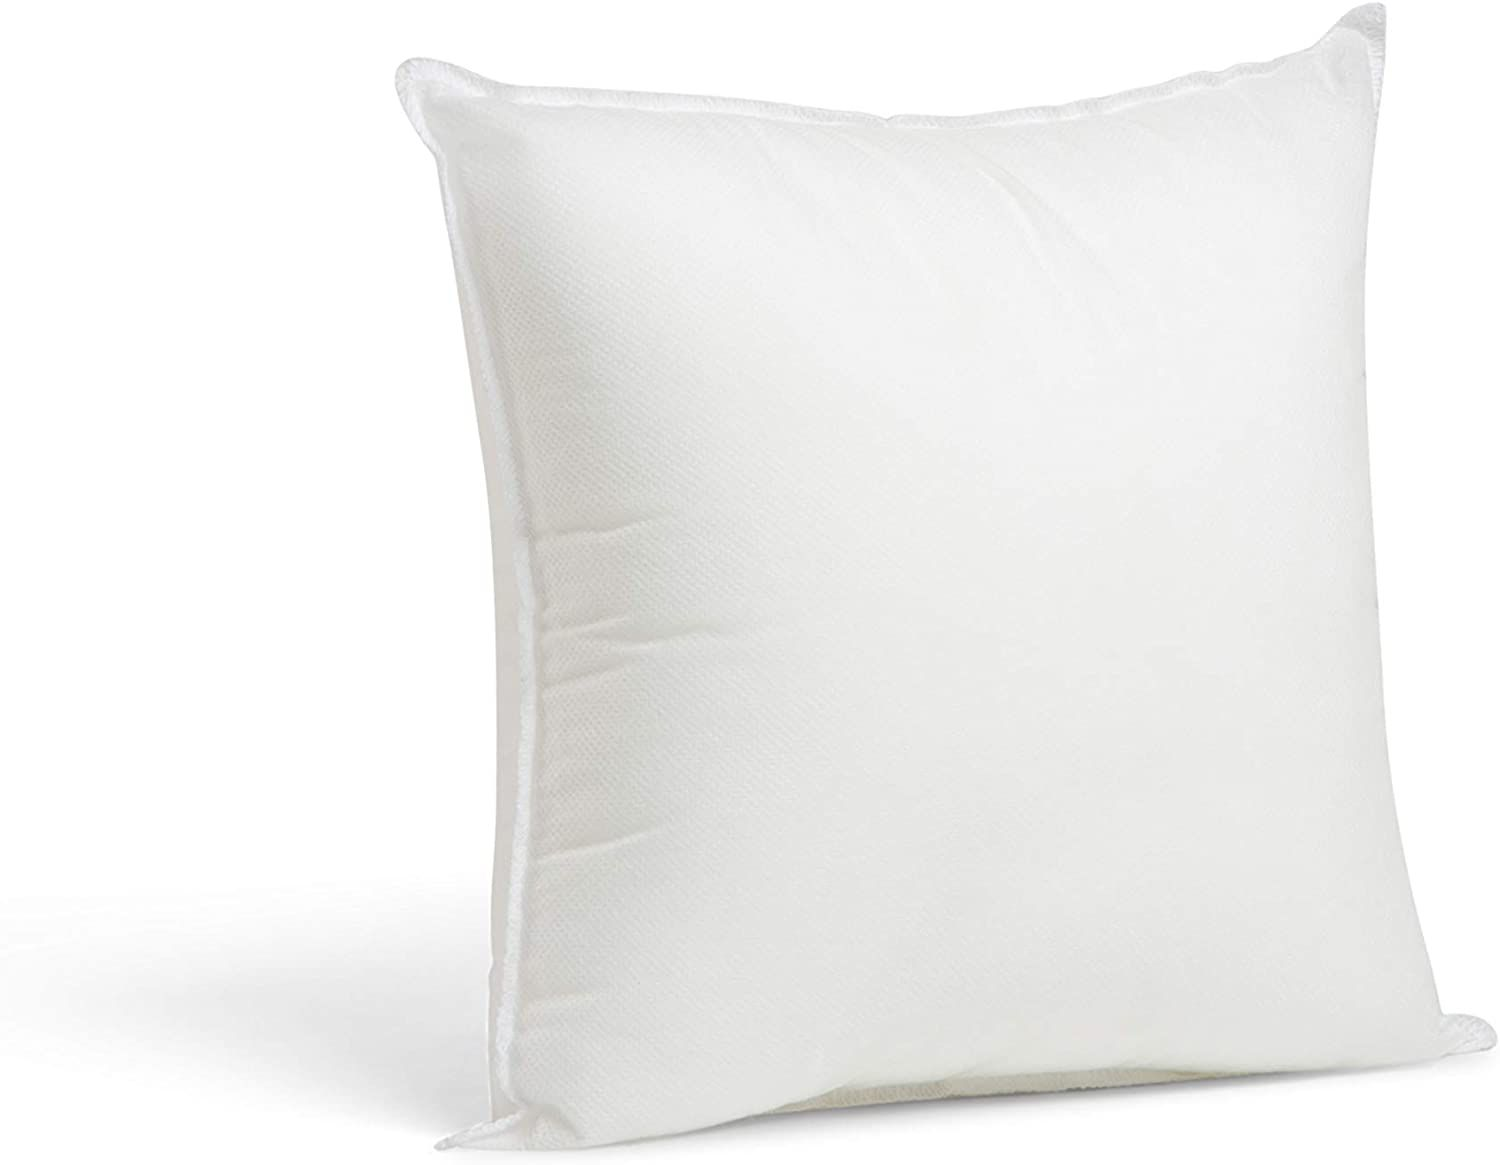 Foamily Premium Hypoallergenic Stuffer Pillow Insert Sham Square Form Polyester 12 L X 12 In 2020 Pillows Pillow Inserts Decorative Pillows